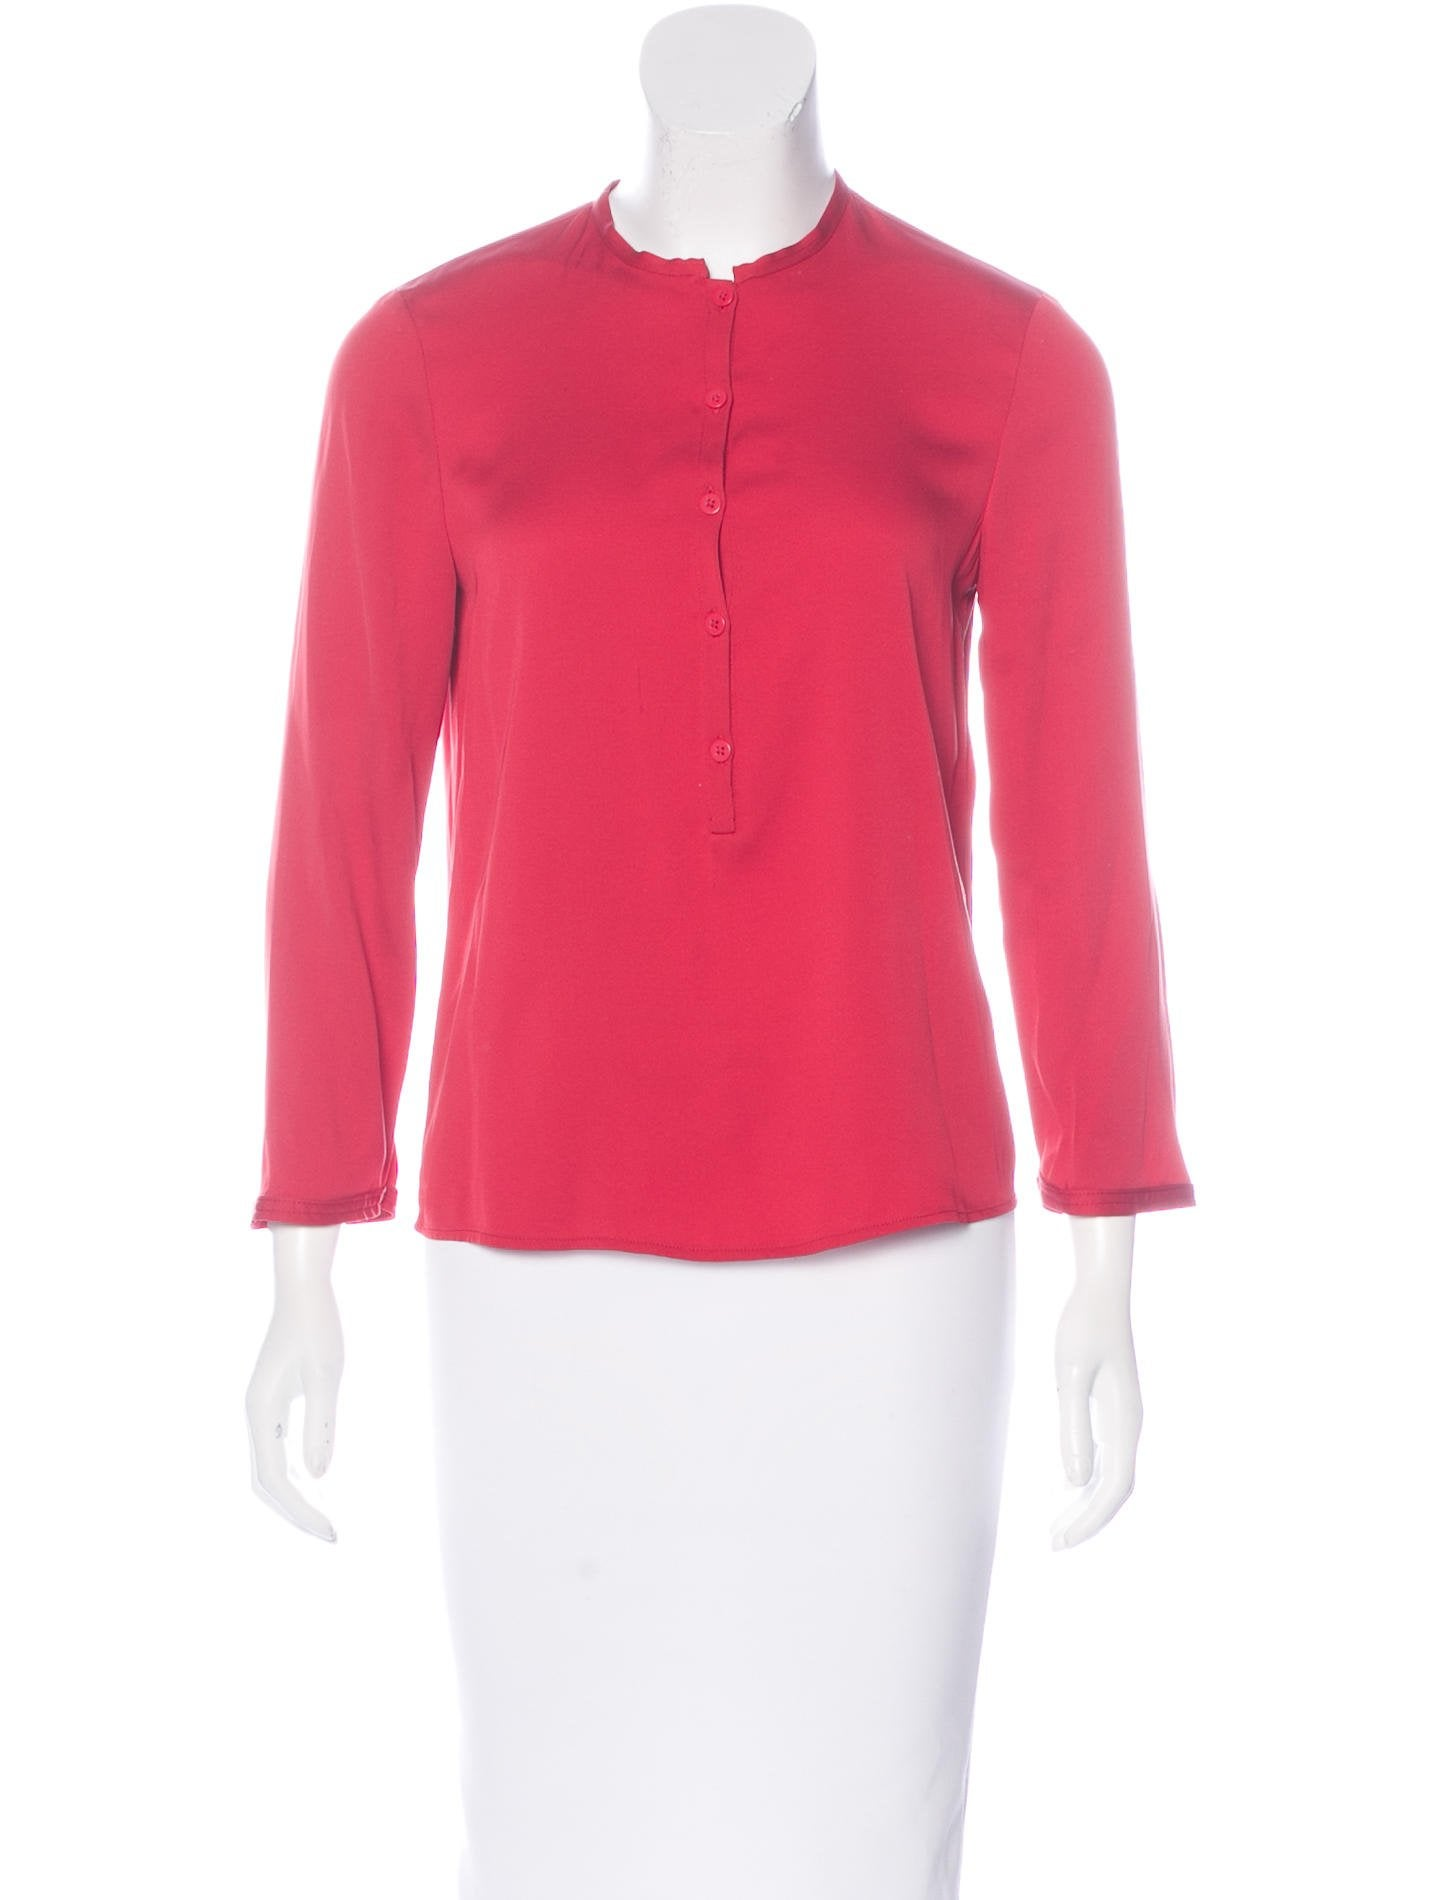 Diane Von Furstenberg Whitman Silk Blouse Clothing